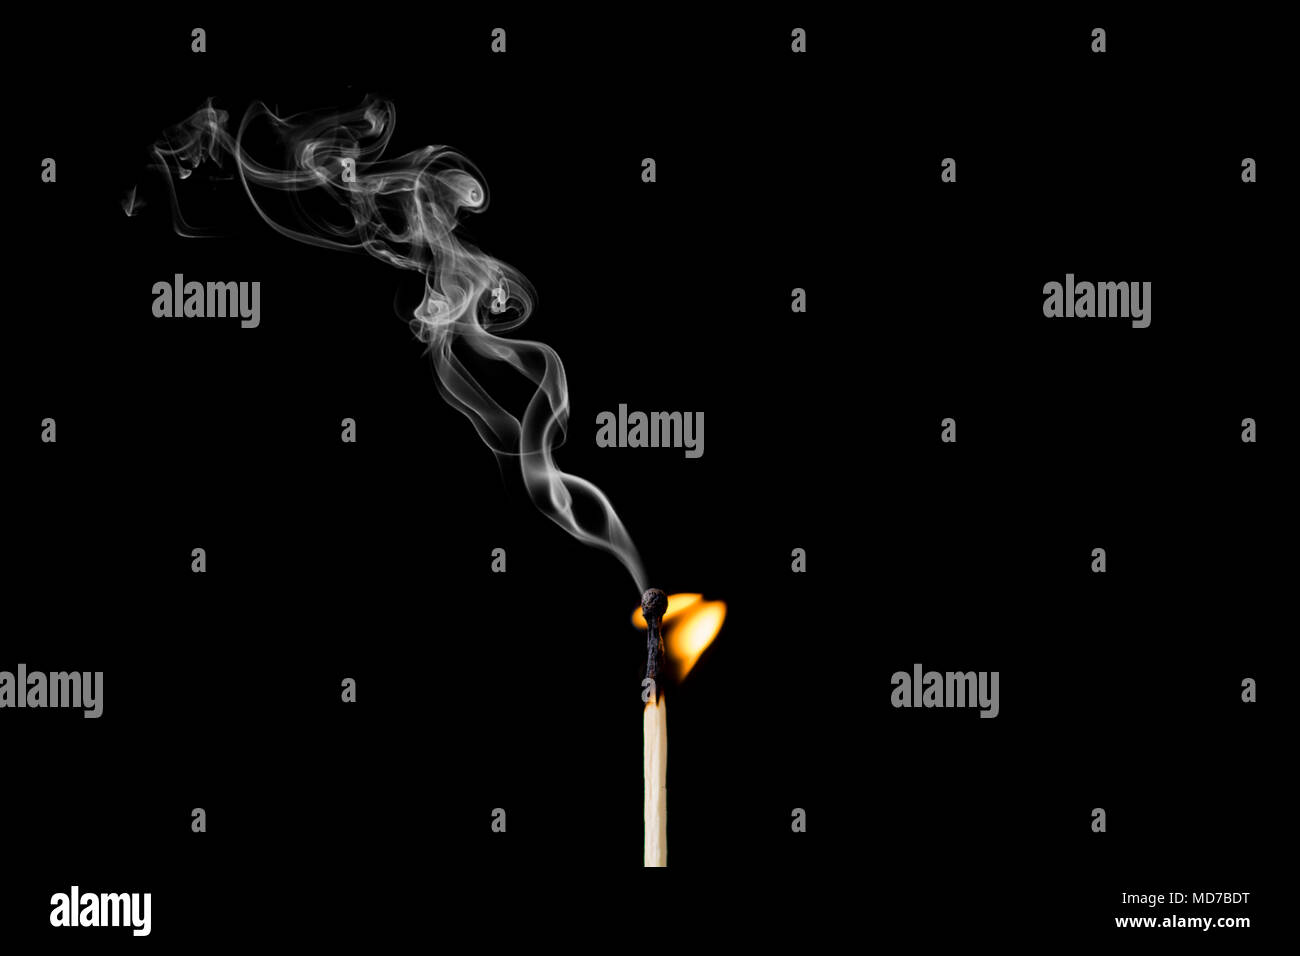 Matchstick burning with little flame and smoke on black background - Stock Image